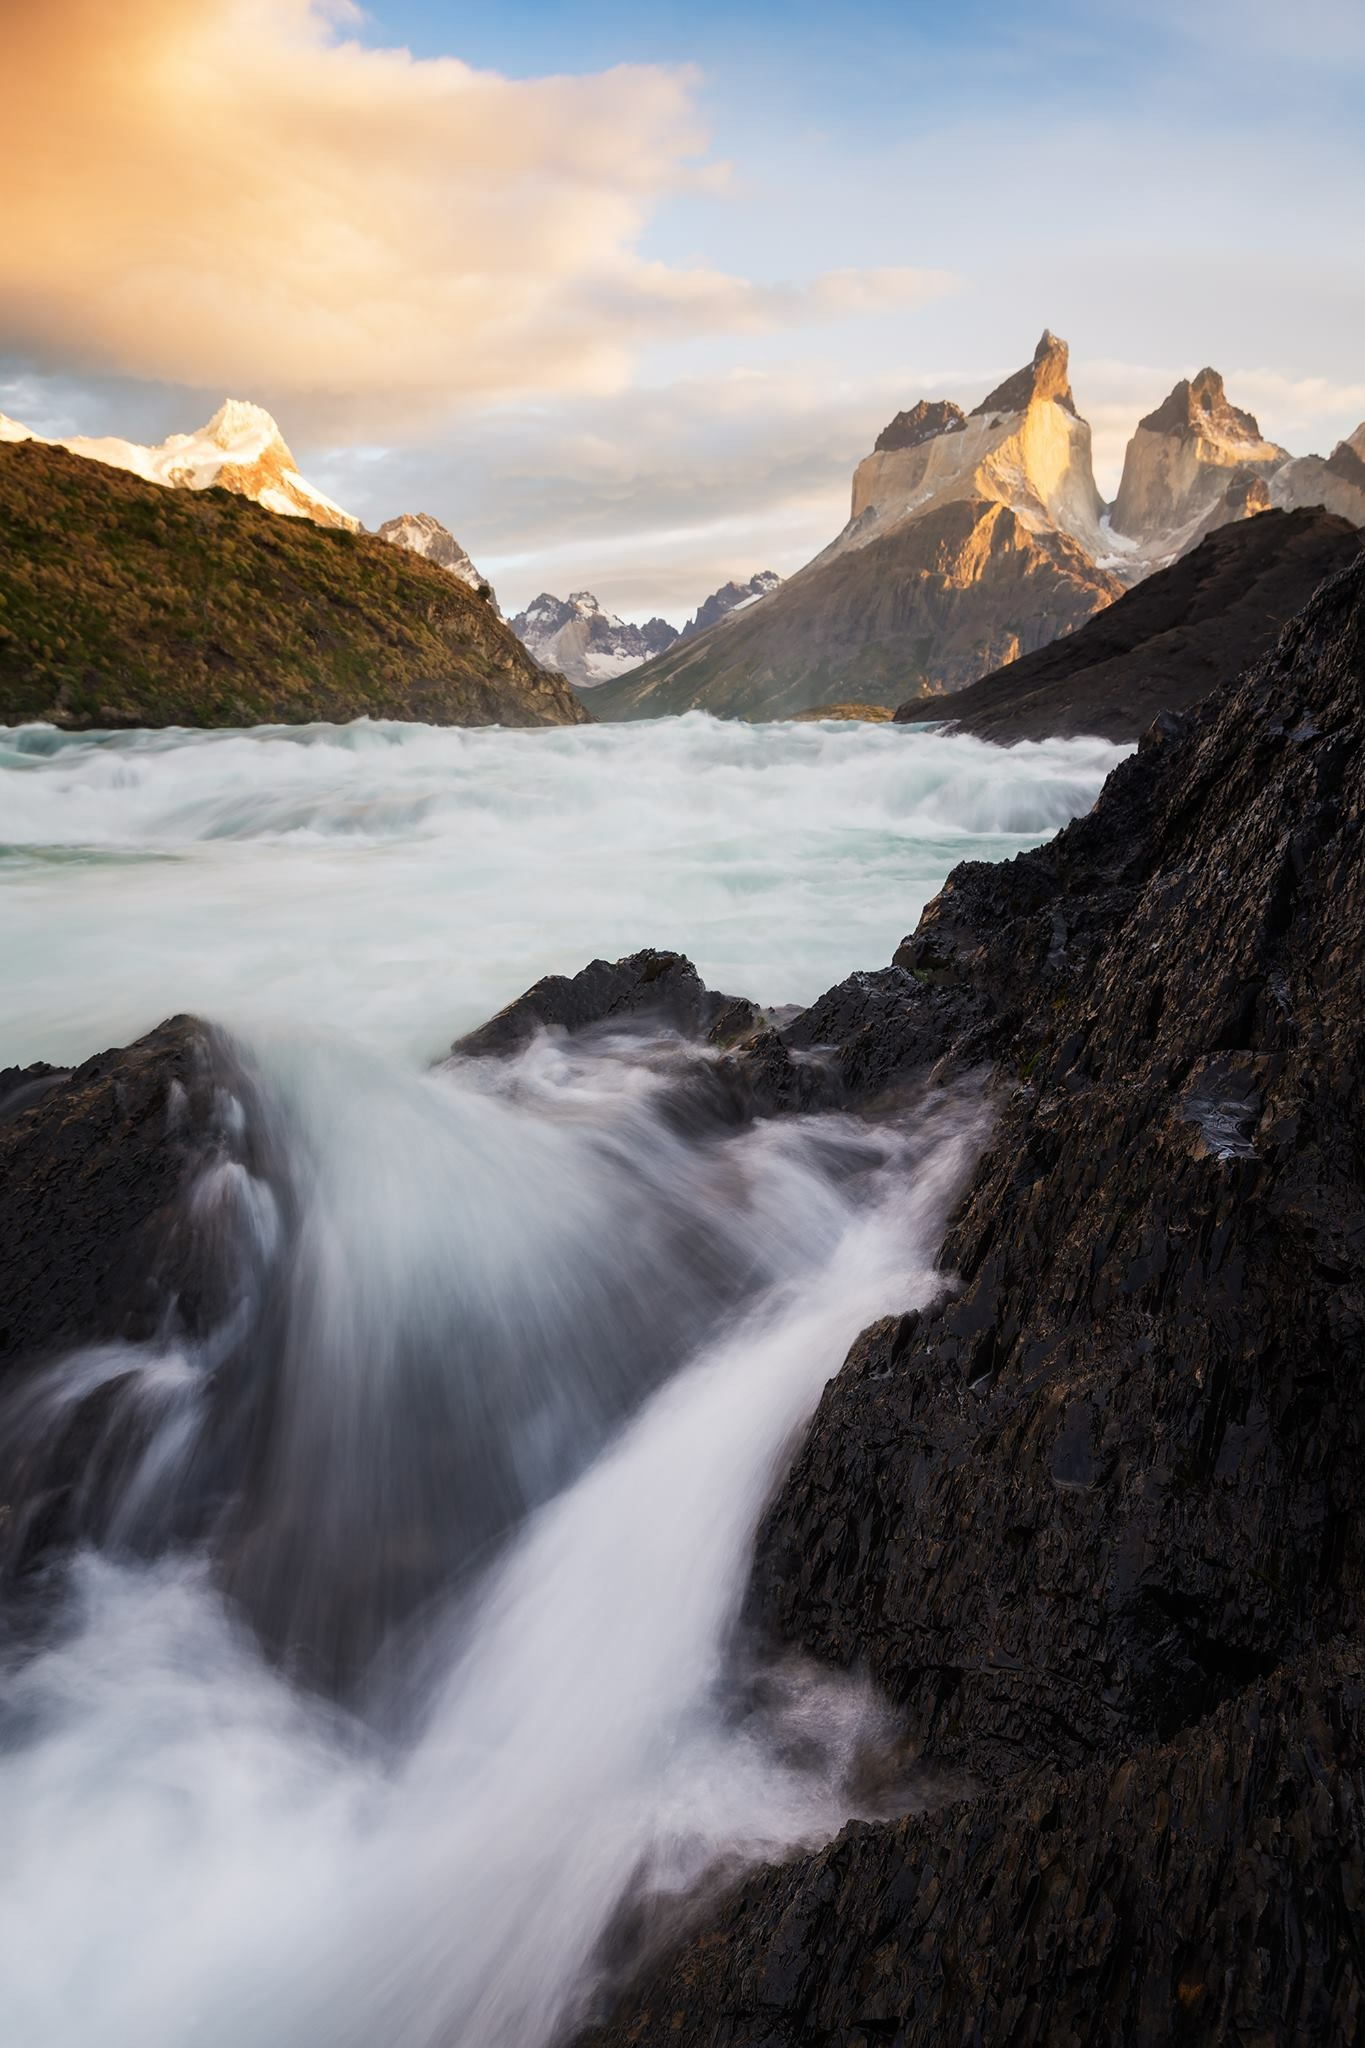 torres del paine patagonia jake anderson this world exists thisworldexists